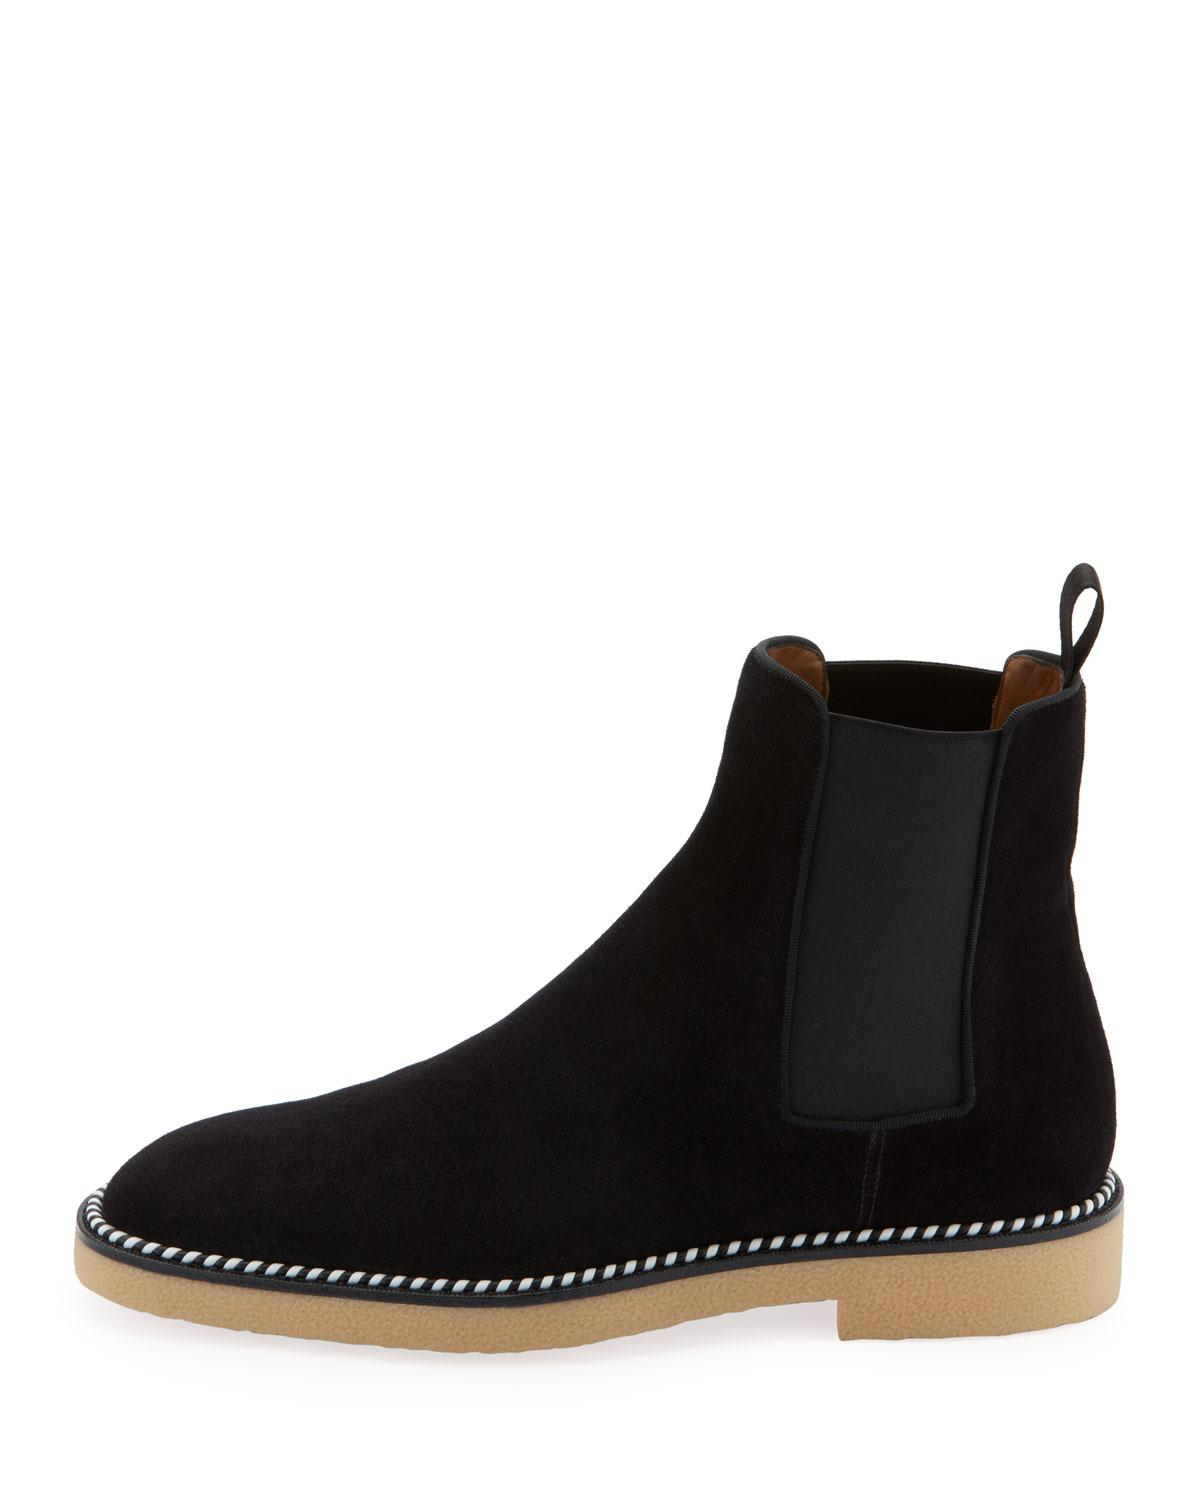 06cced830b2 Lyst - Christian Louboutin Men s Chelsea Crepe-sole Suede Boots in Black  for Men